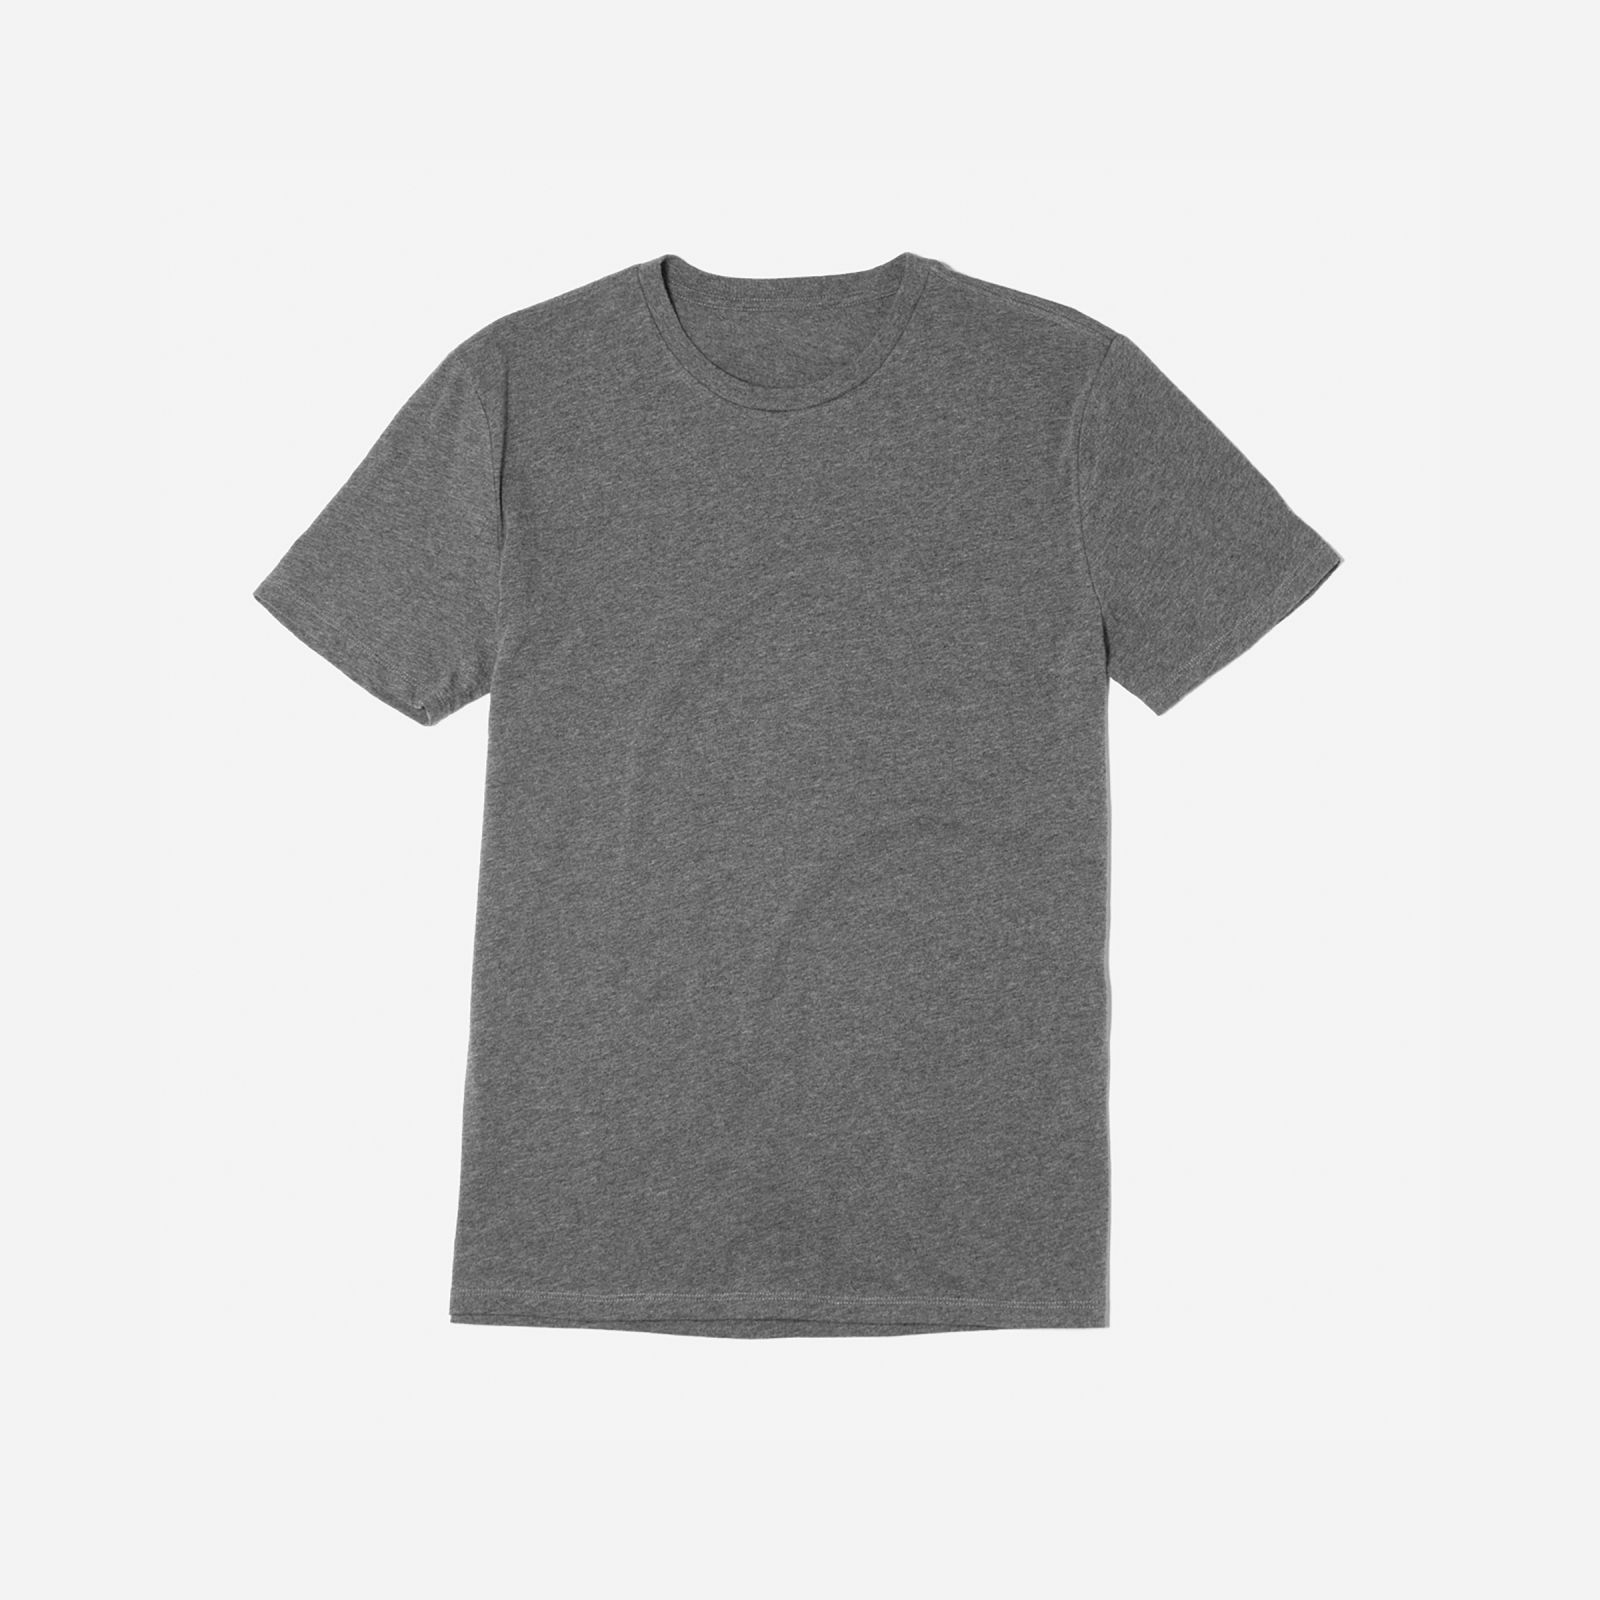 men's cotton crew t-shirt by everlane in heather charcoal, size xs